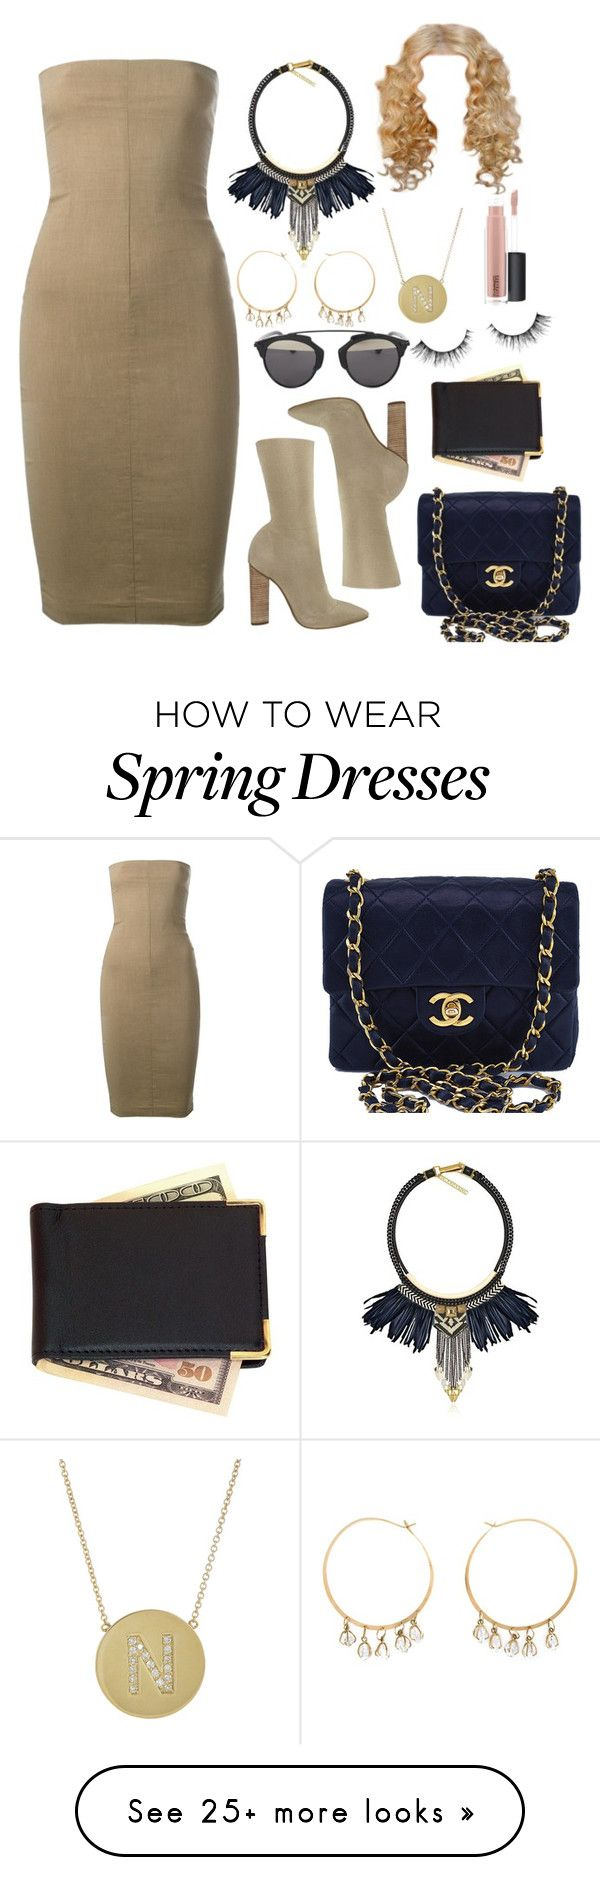 """""""hollywood heir"""" by traplourde on Polyvore featuring Romeo Gigli, adidas, Christian Dior, Fiona Paxton, Melissa Joy Manning, Chanel, Royce Leather, Jennifer Meyer Jewelry and MAC Cosmetics"""